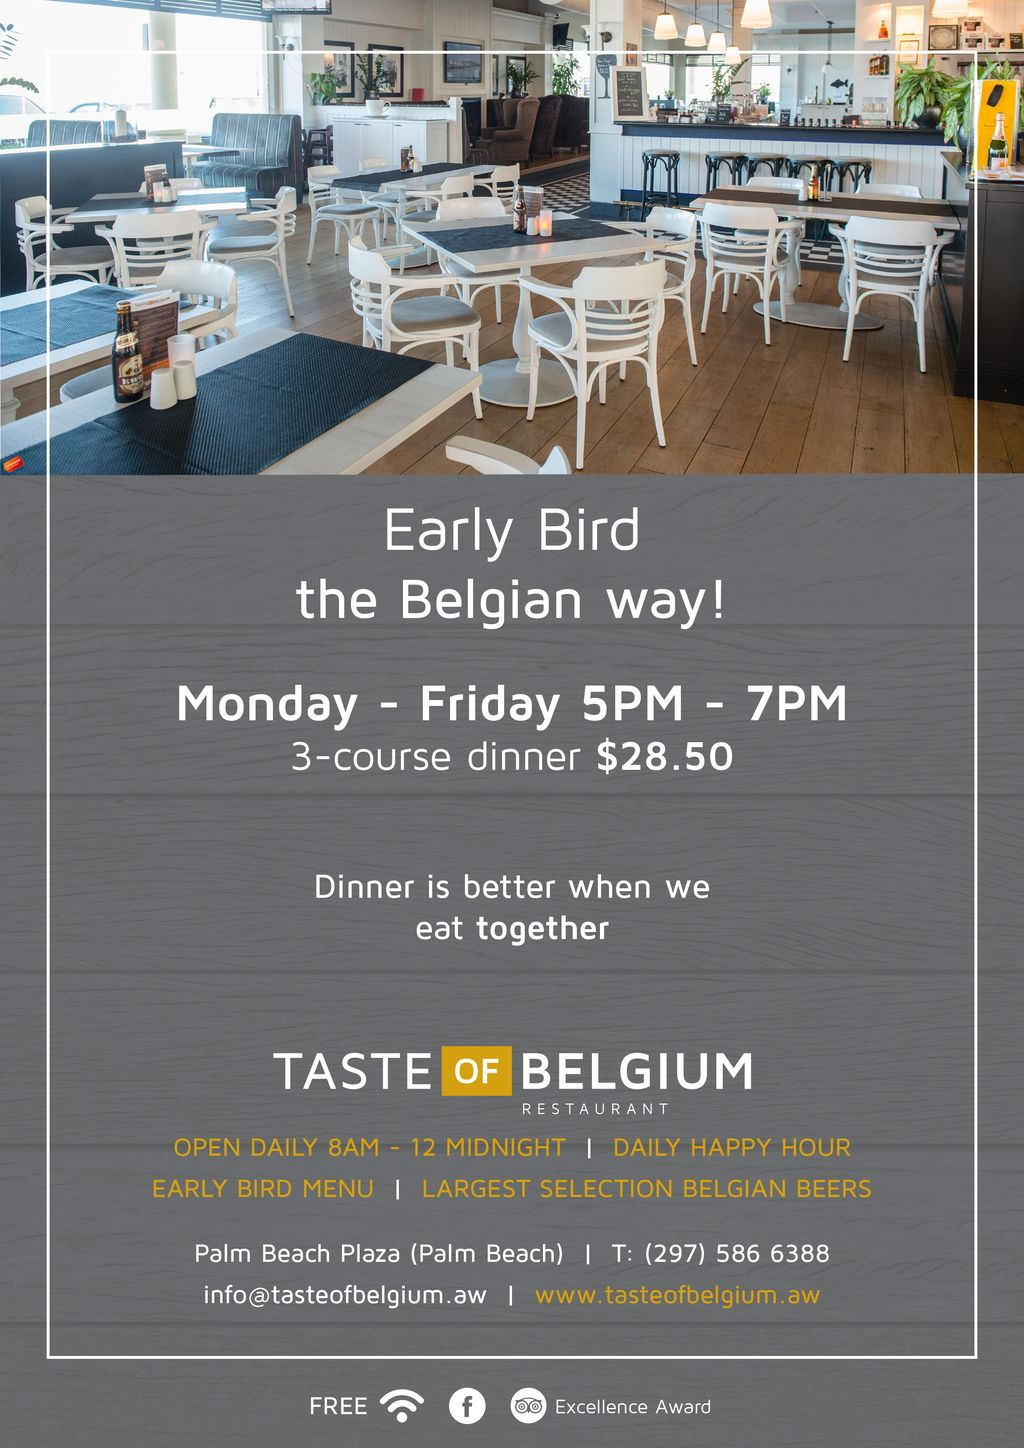 Taste of Belgium Early Bird Special